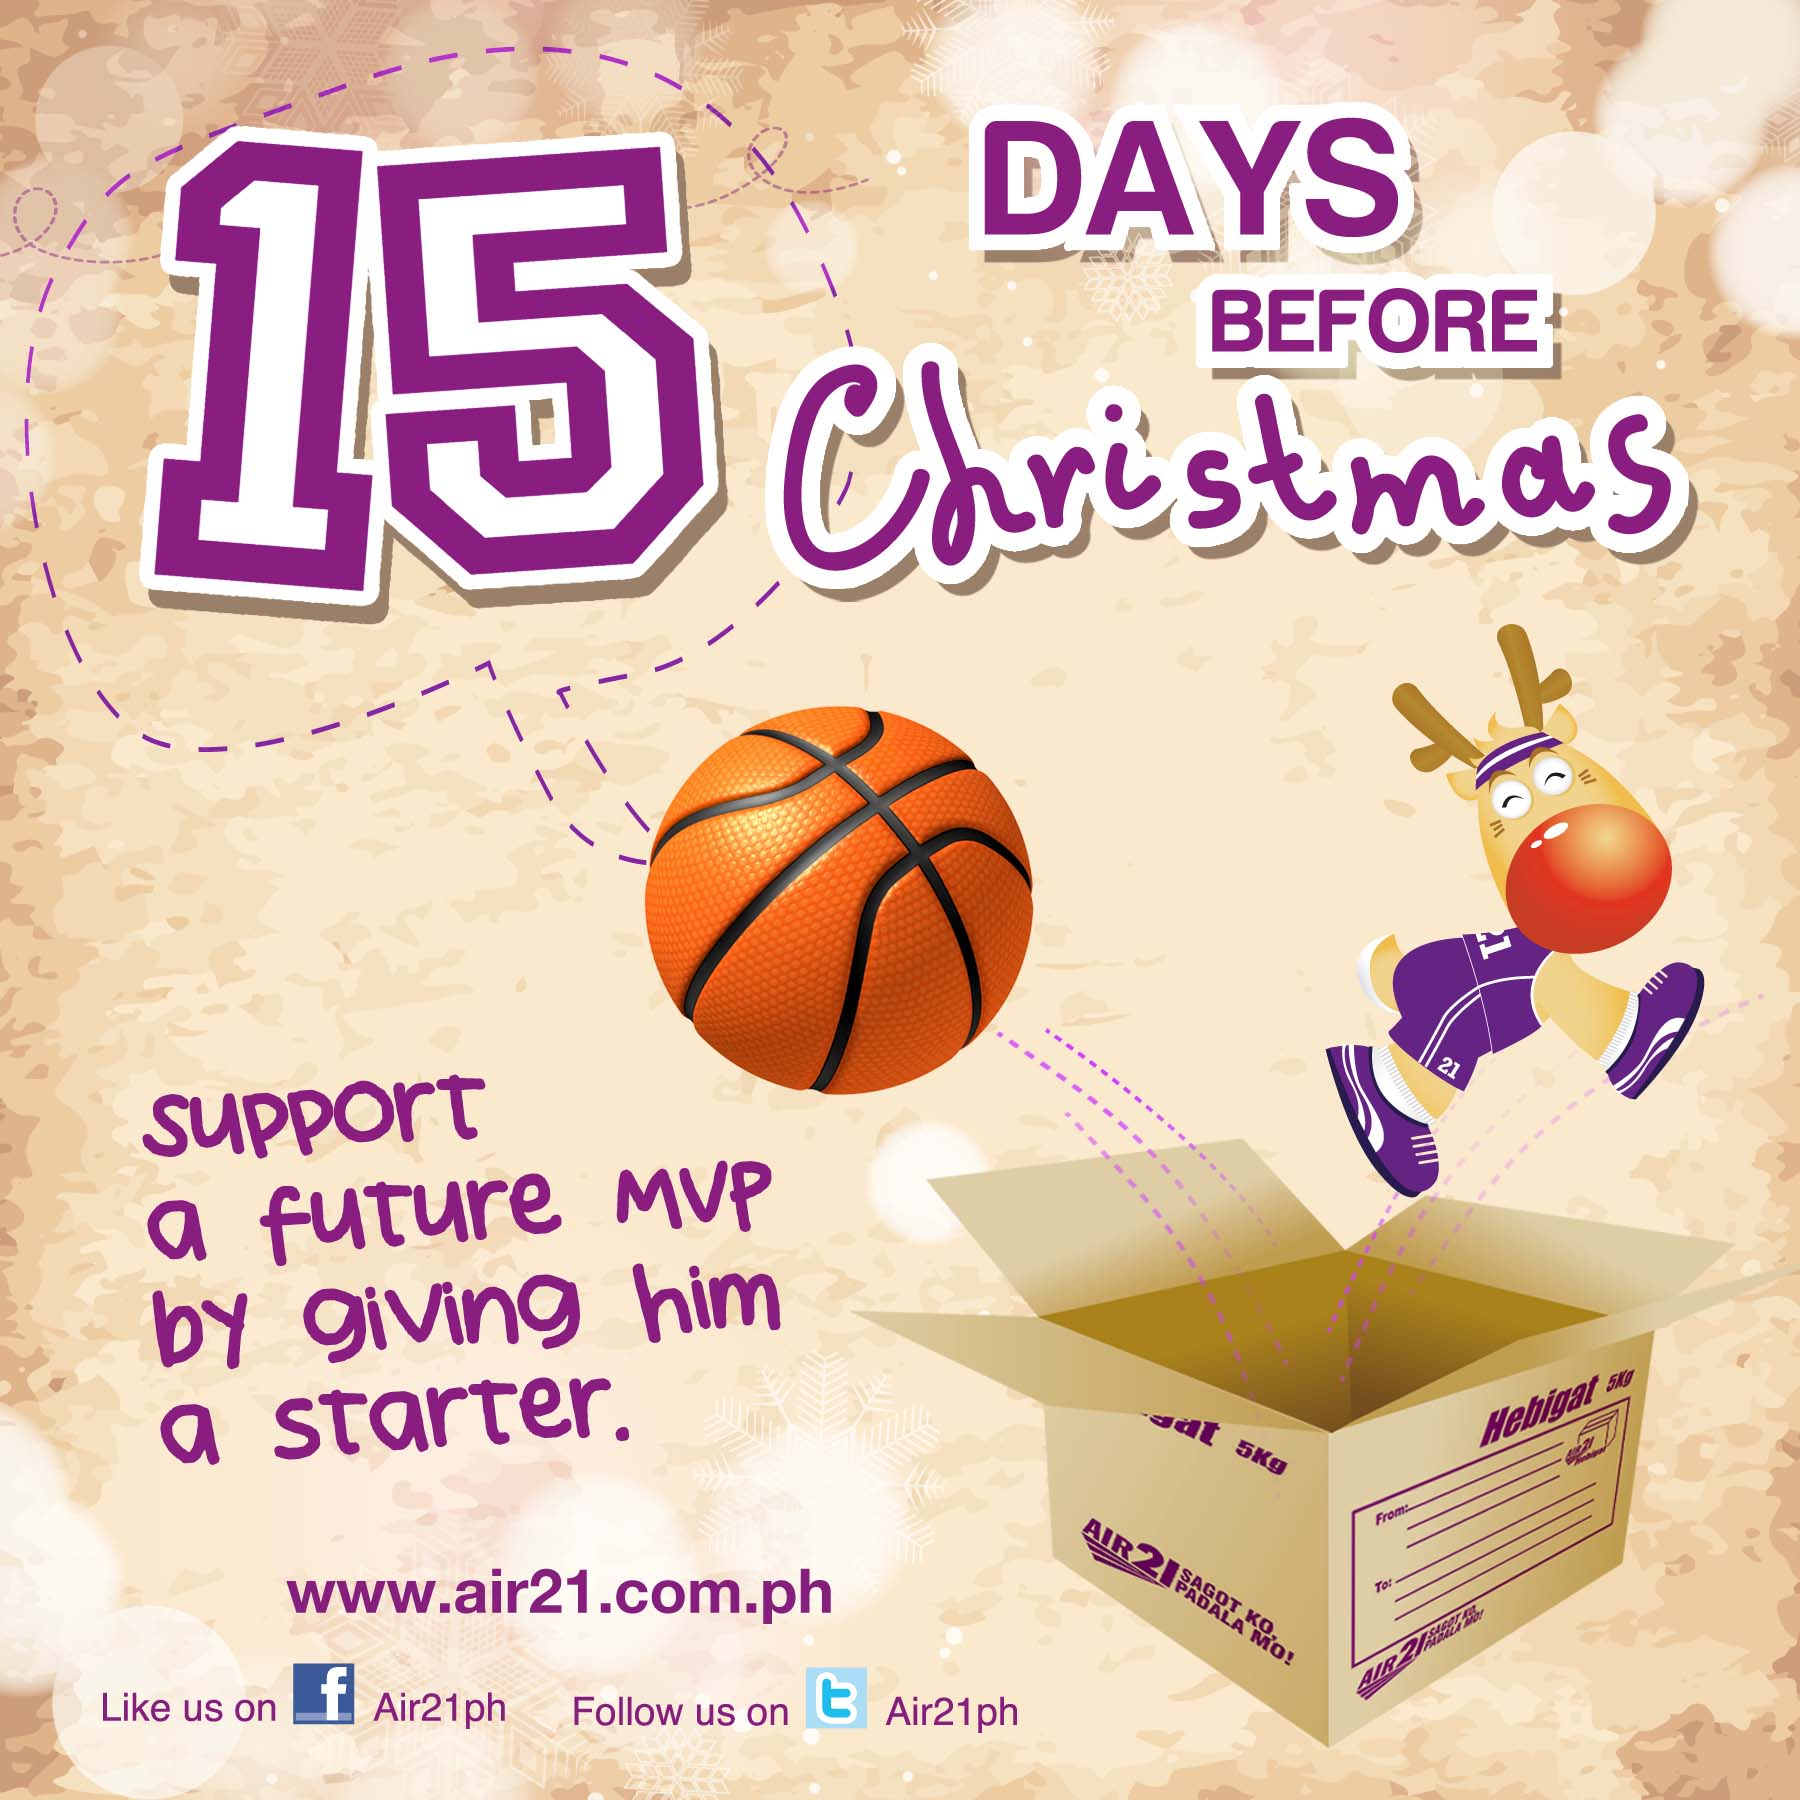 Air21 Blog » Blog Archive » AIR21 Countdown: 15 Days before Christmas